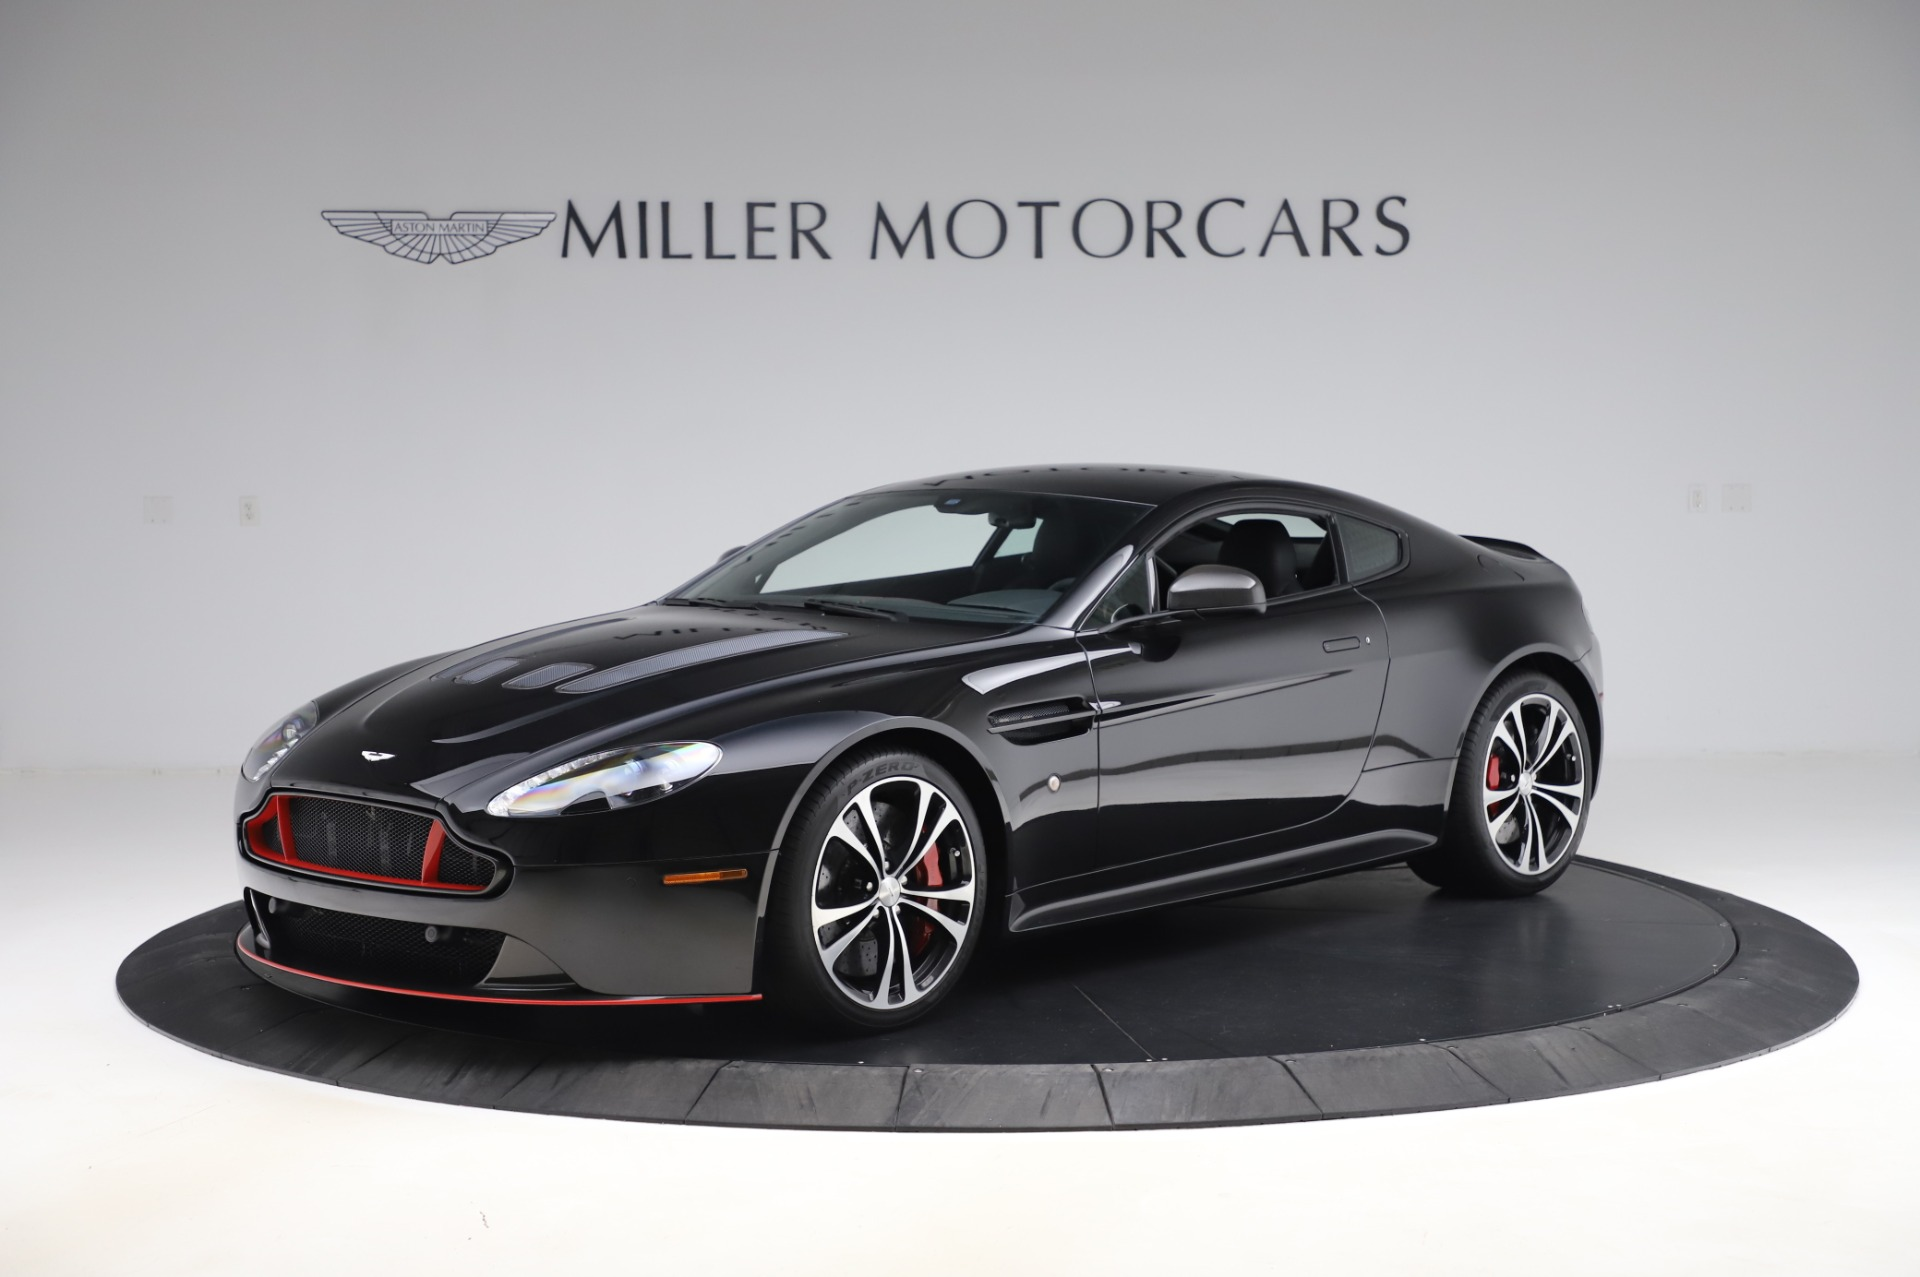 New 2017 Aston Martin V12 Vantage S for sale Sold at Bentley Greenwich in Greenwich CT 06830 1